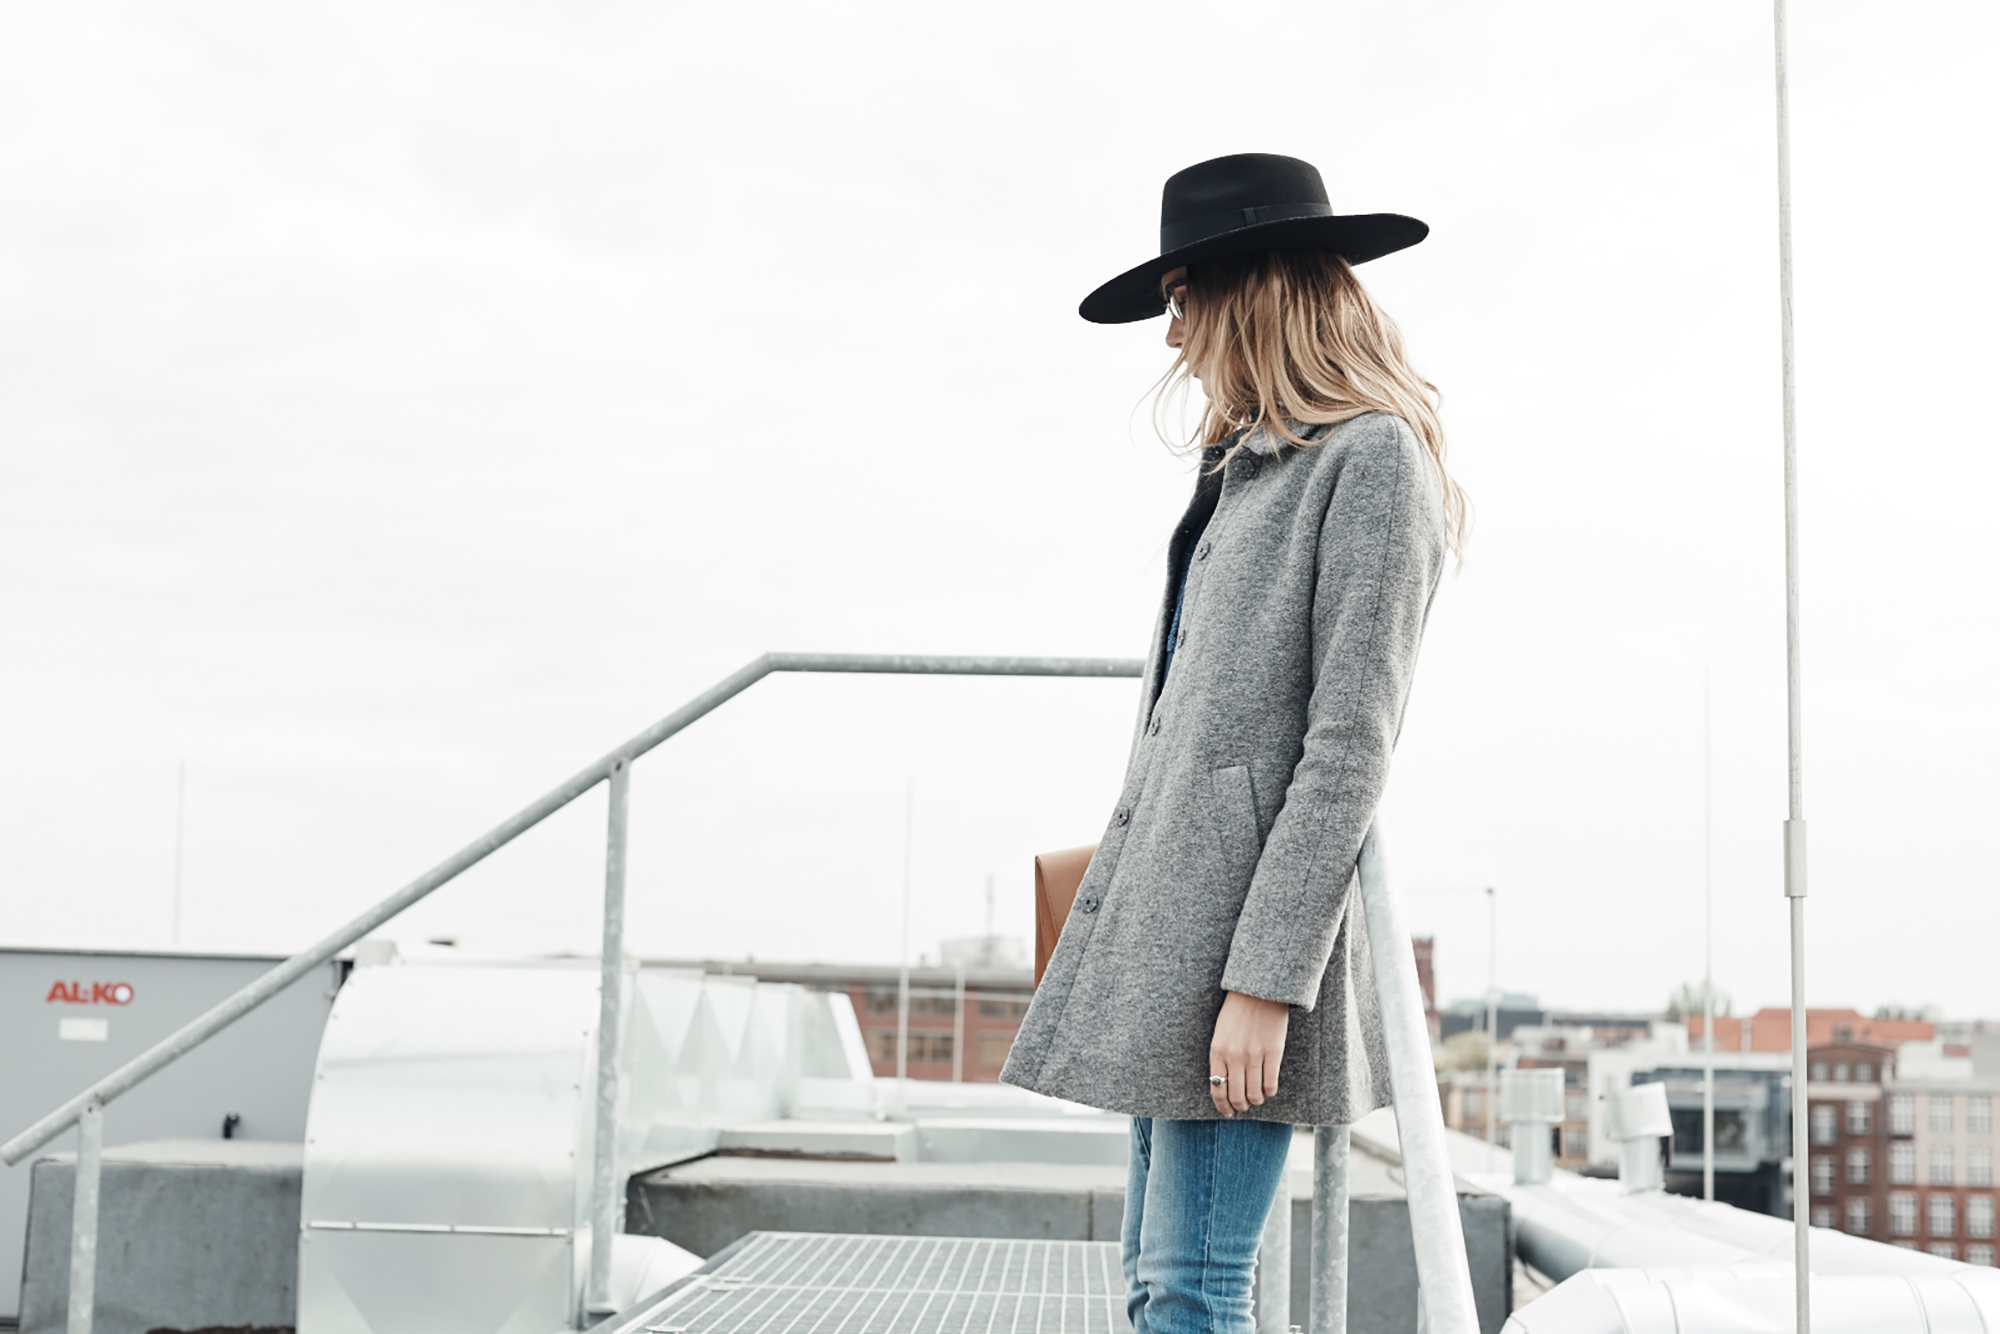 woman black hat outdoor grey jacket